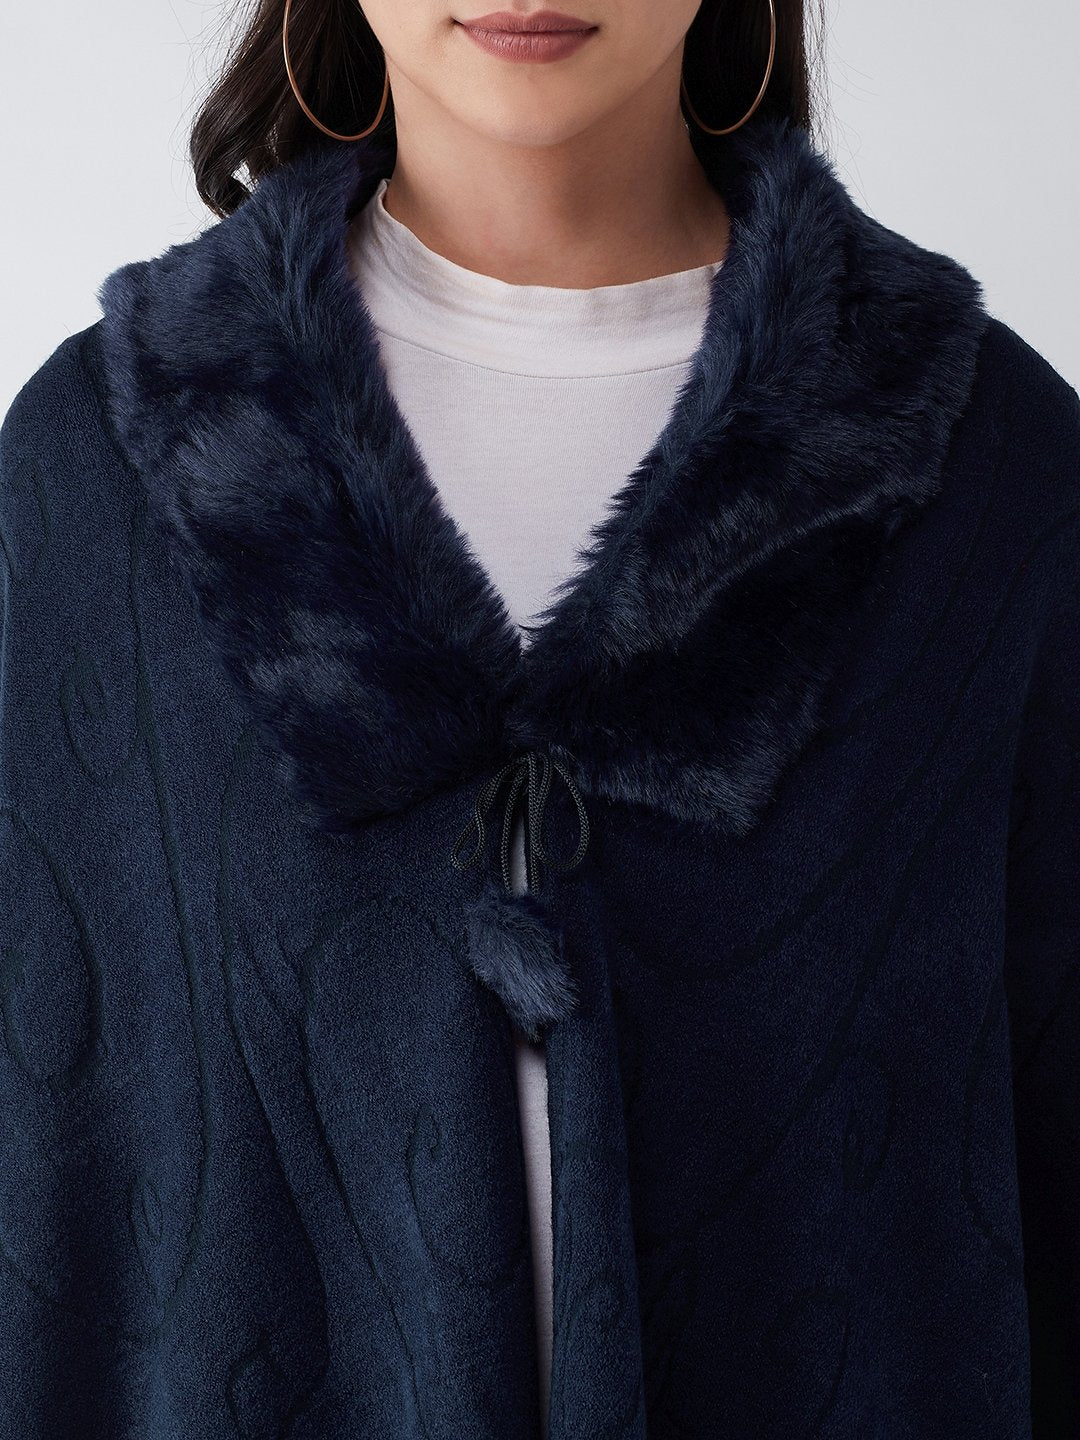 Blue Faux Fur Cape